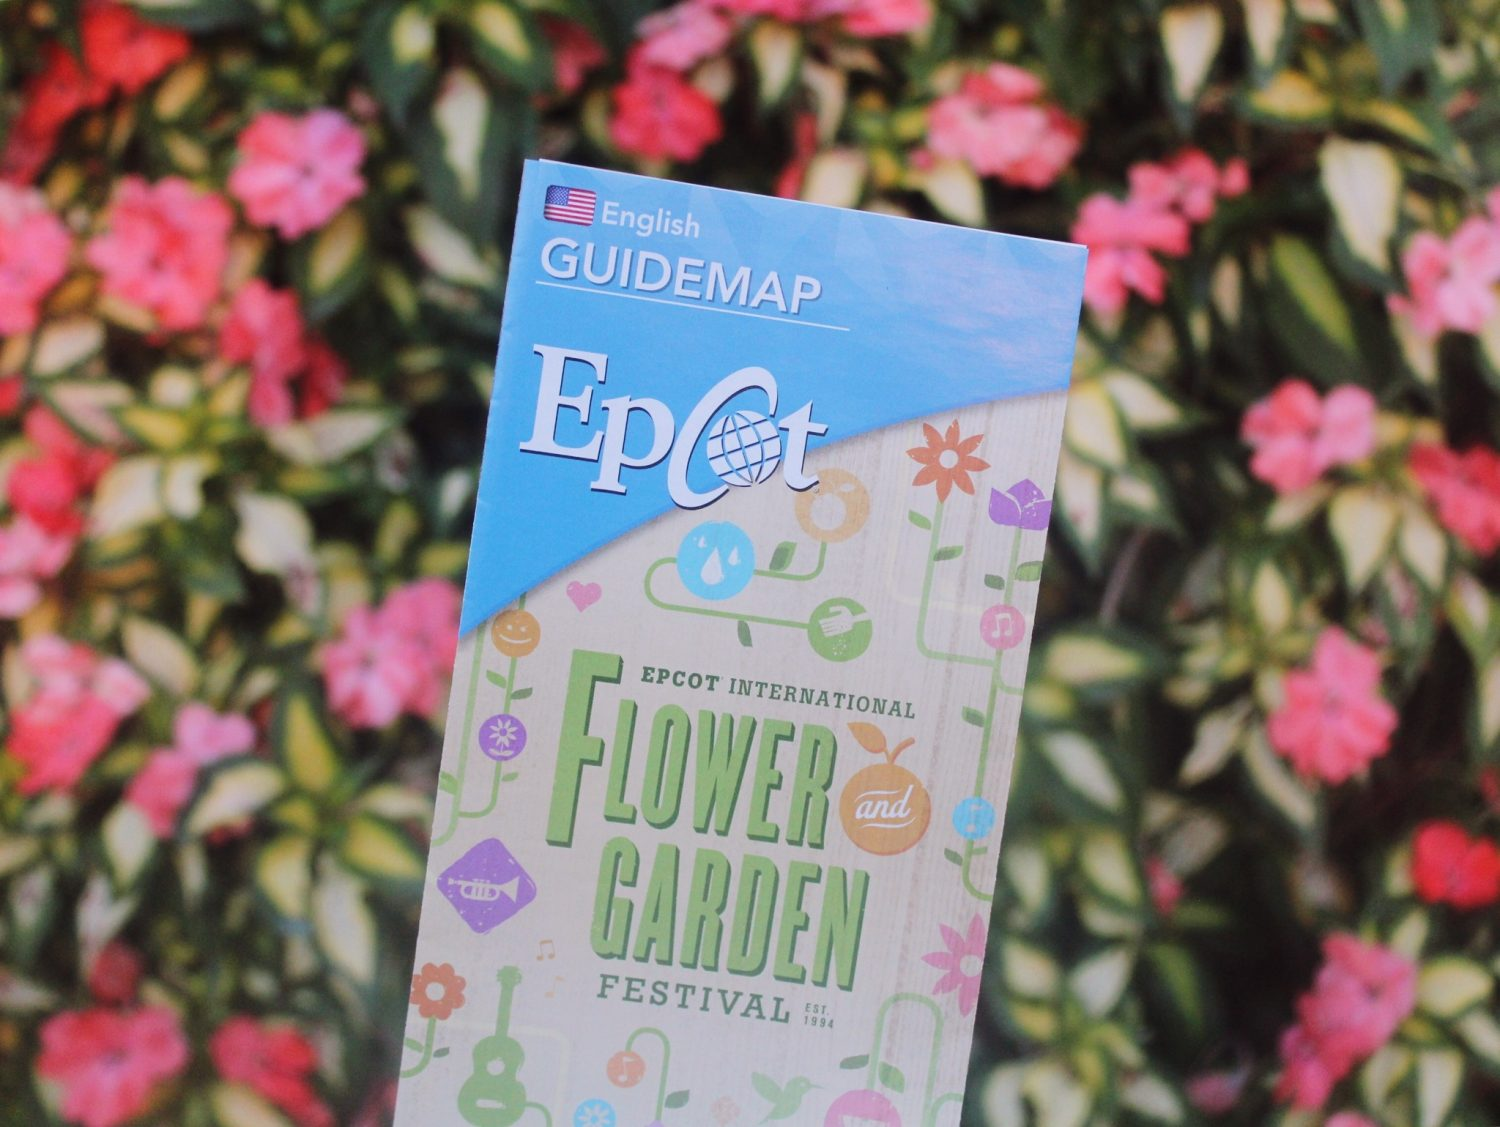 Epcot International Flower and Garden Festival Guide map